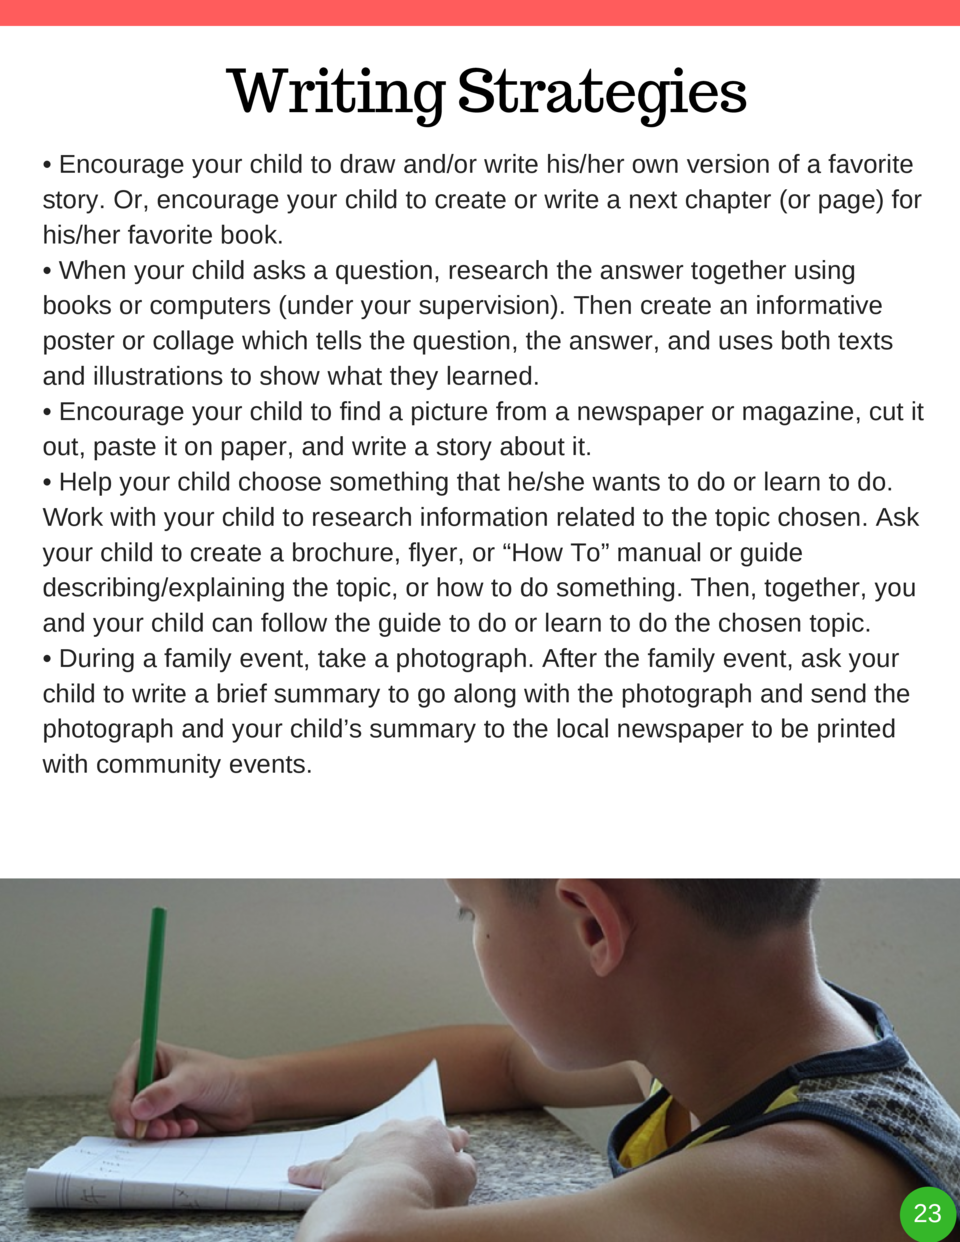 Writing Strategies     Encourage your child to draw and or write his her own version of a favorite story. Or, encourage yo...